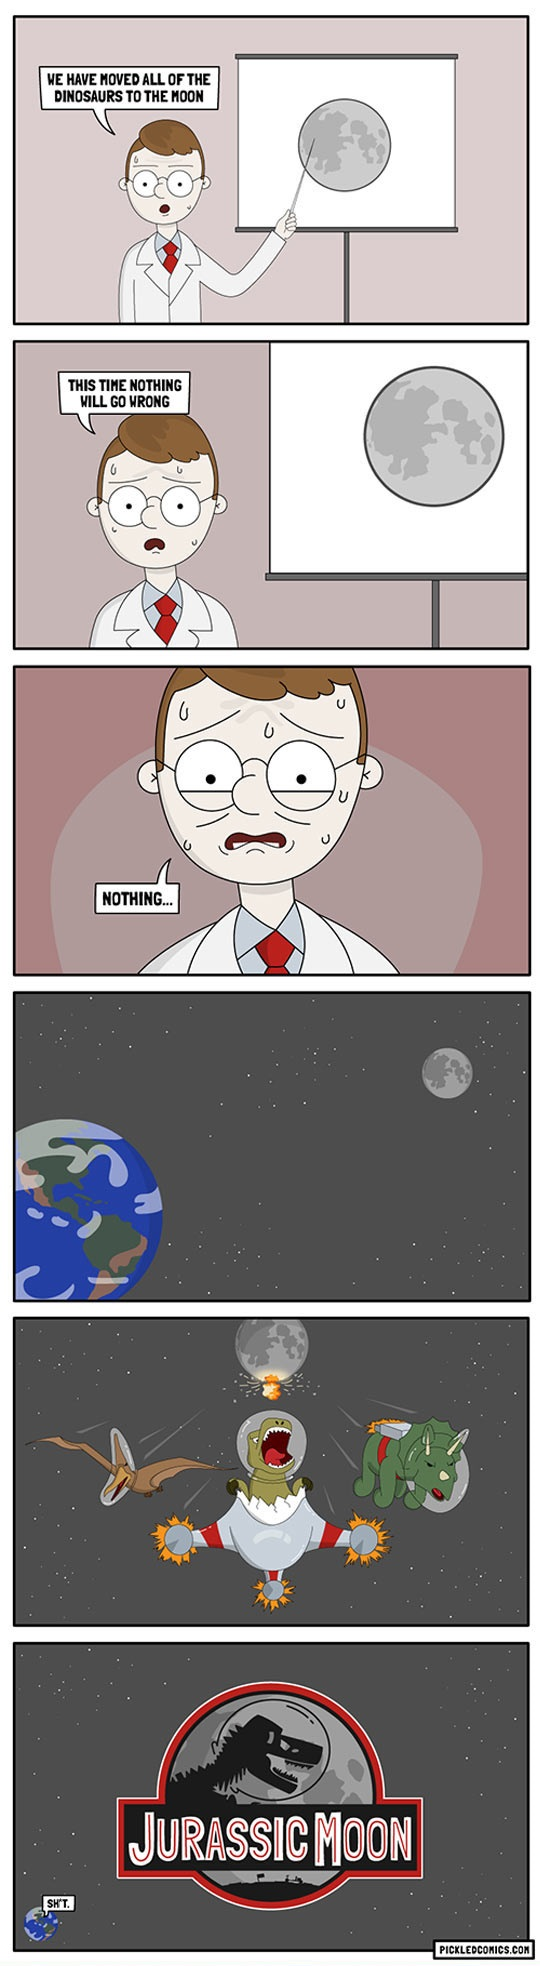 funny-Jurassic-Moon-park-problems-comic